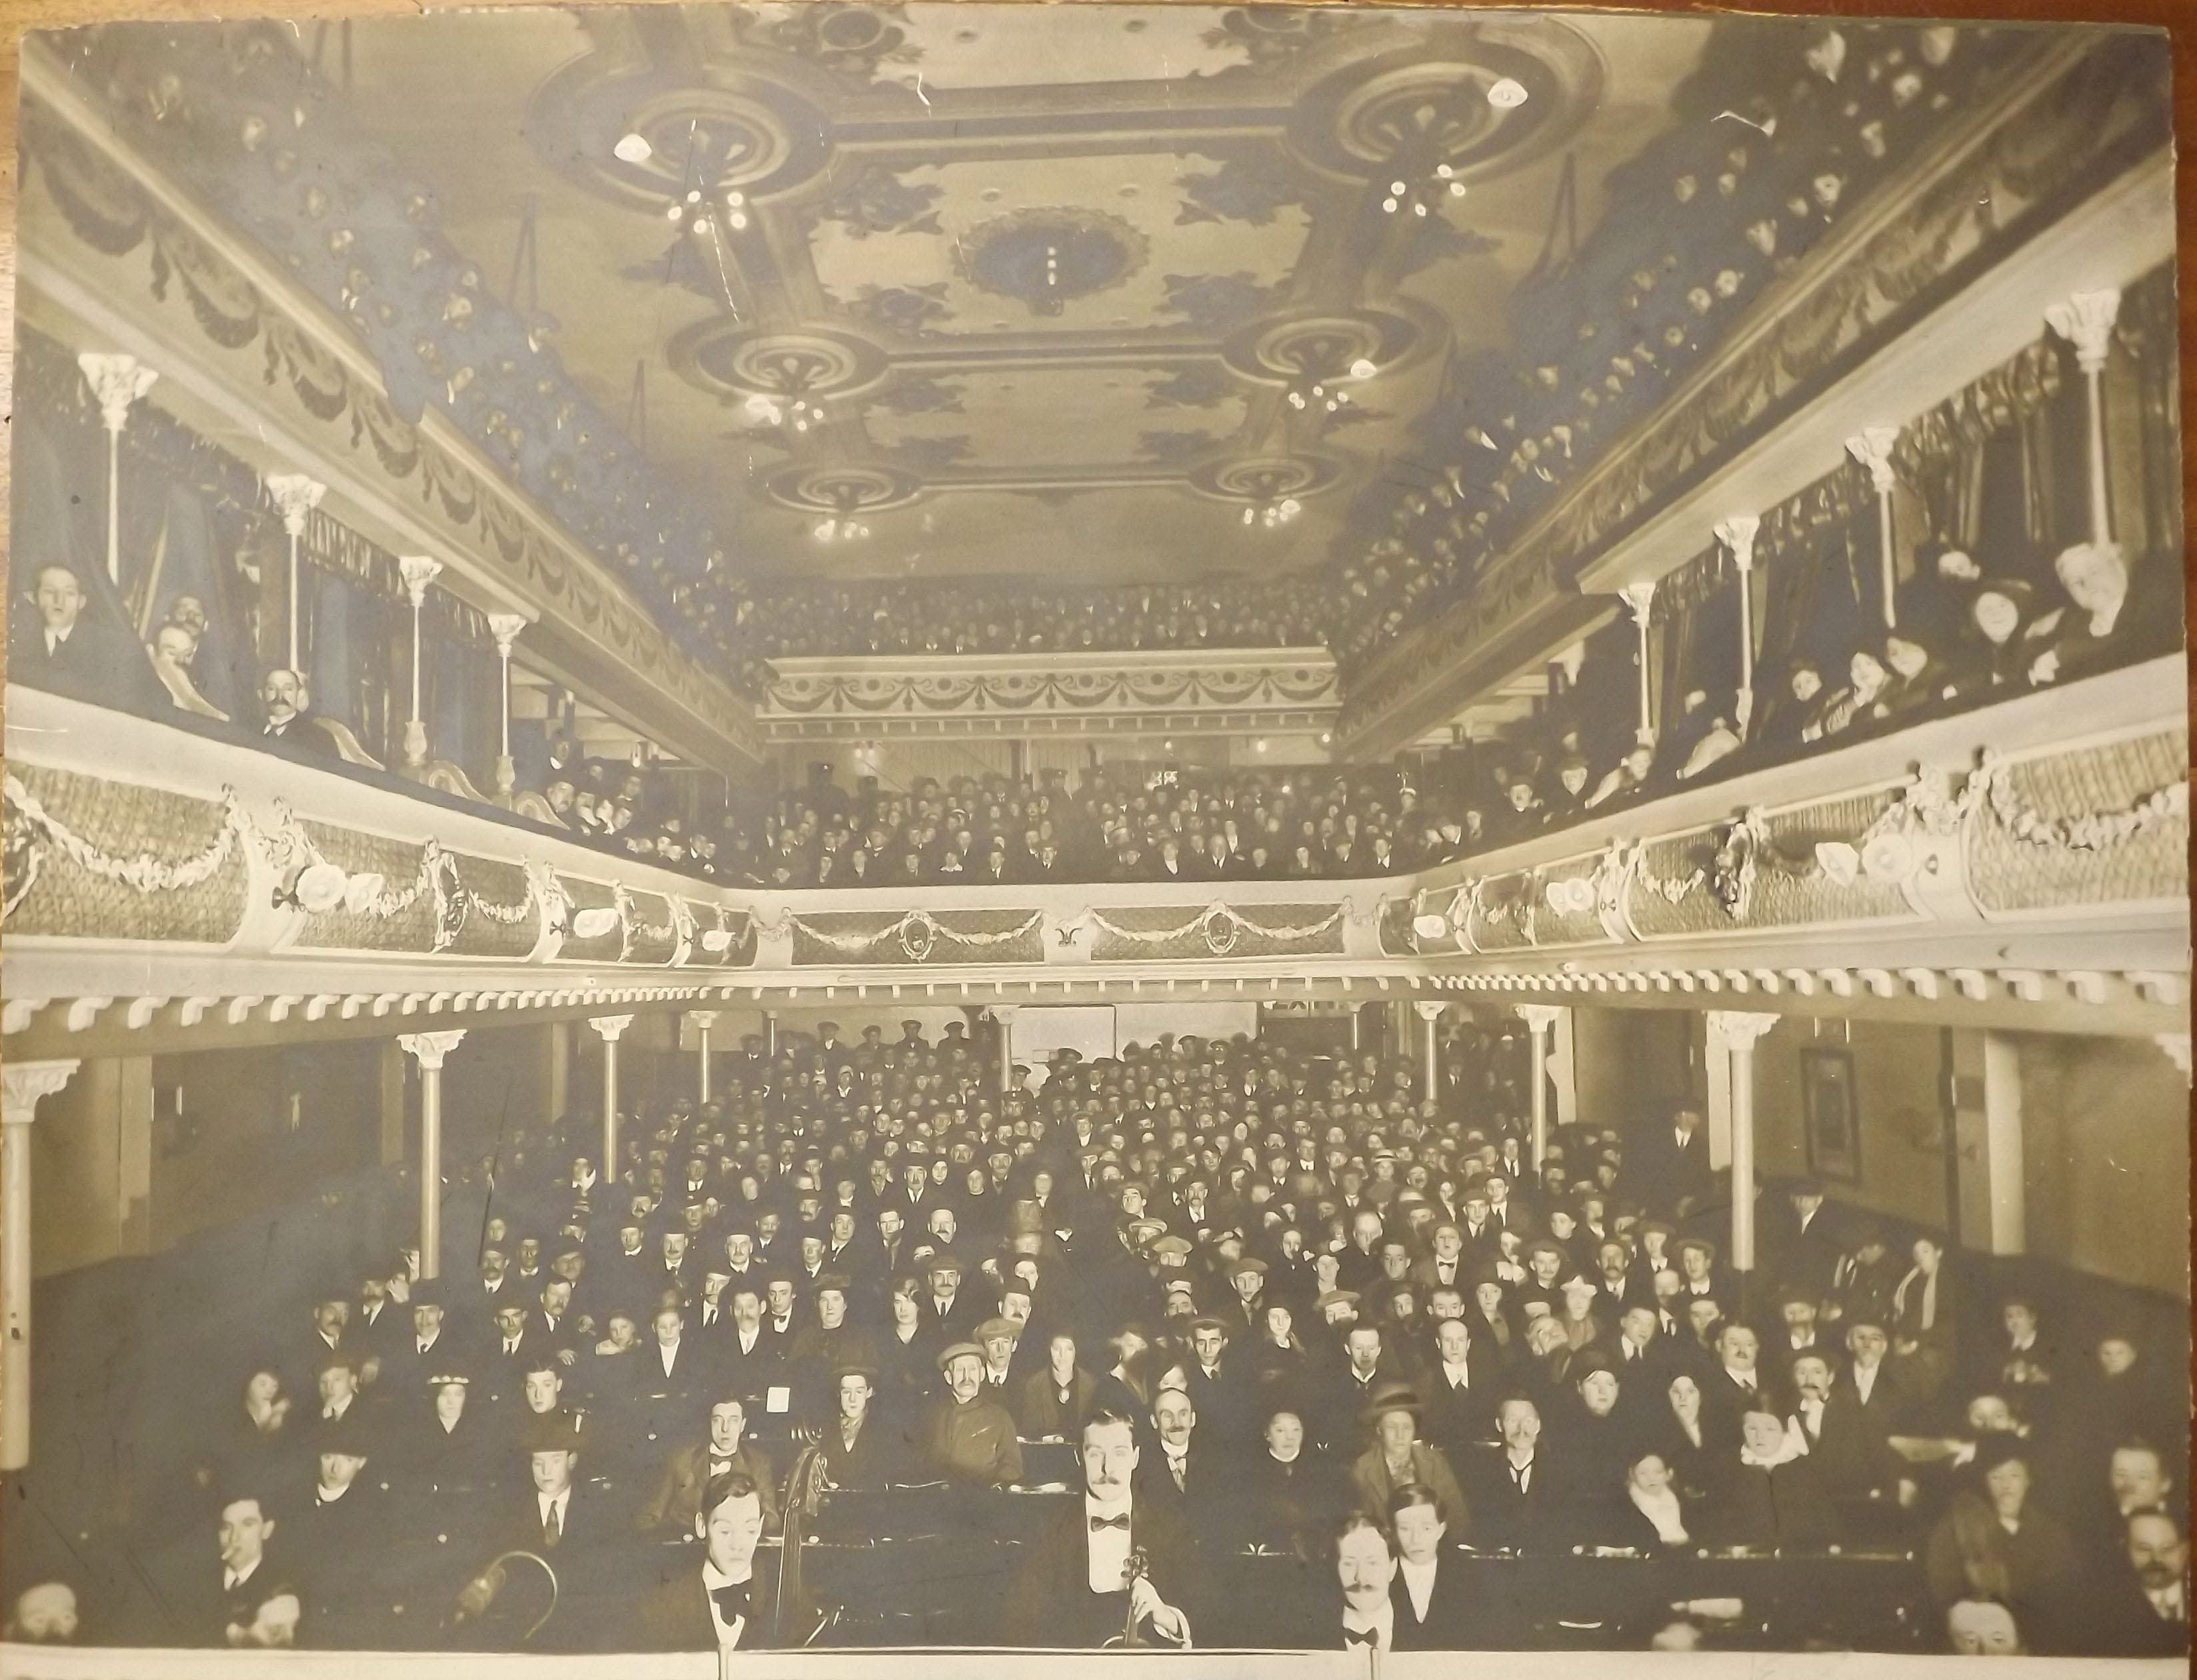 View from City Varieties stage showing a packed audience in the seats and both balconies